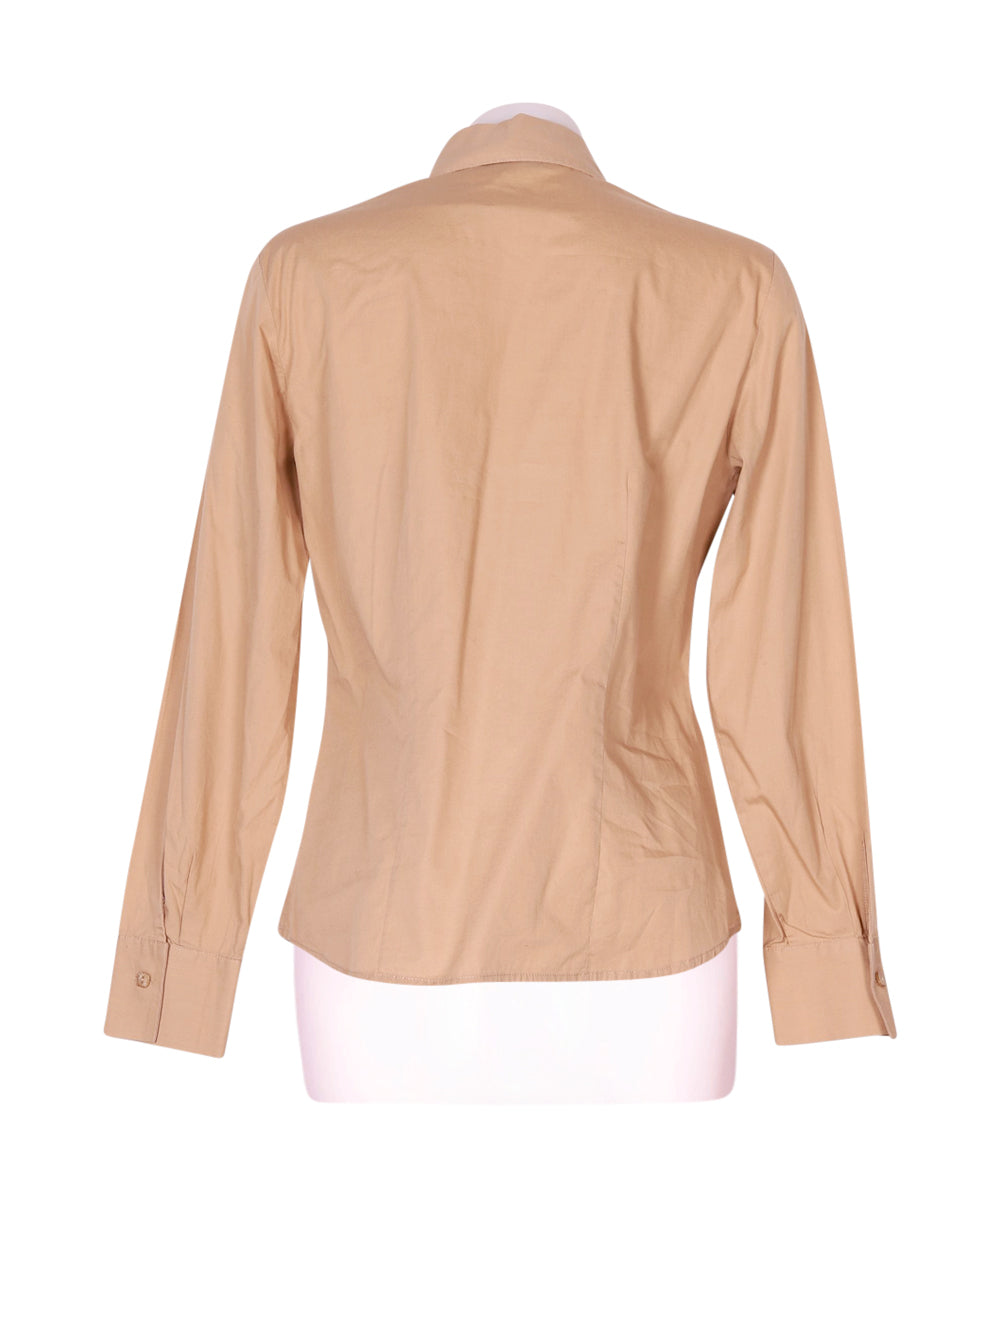 Back photo of Preloved maria rosa Beige Woman's shirt - size 10/M